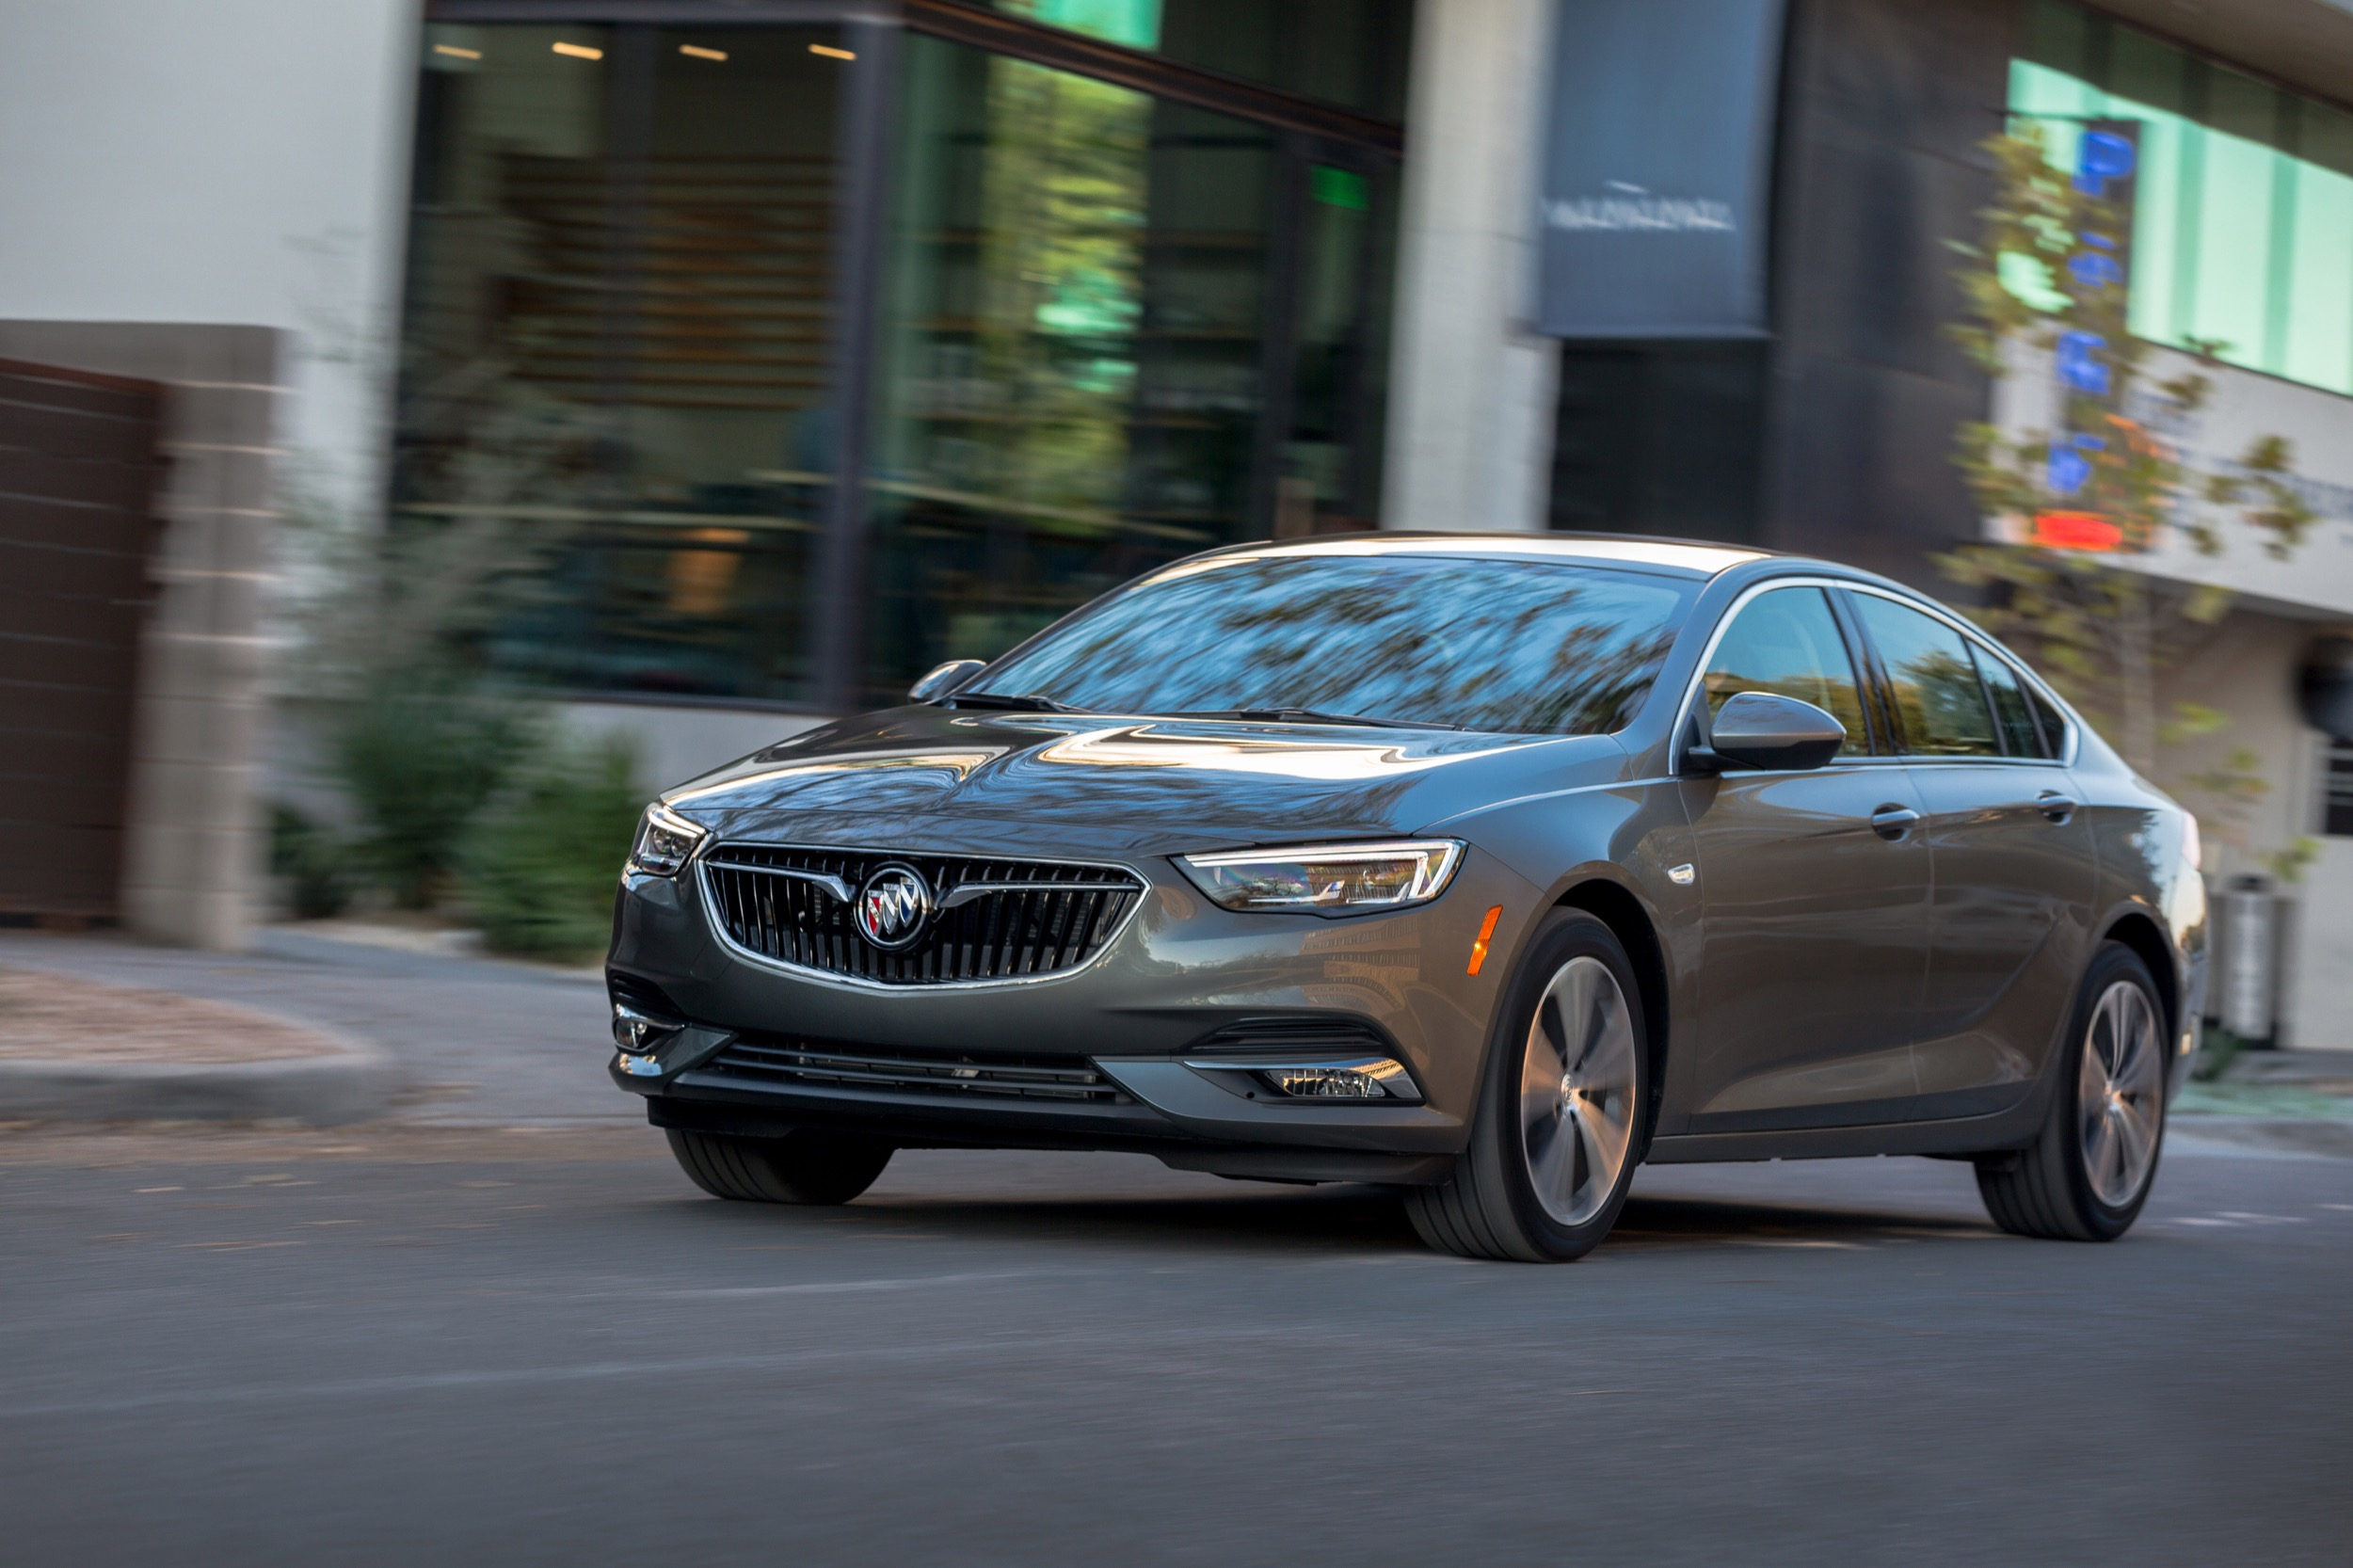 Gm Discontinues One Trim Level Of Buick Regal Sportback | Gm 2022 Buick Regal Lease Deals, Exterior Colors, Horsepower